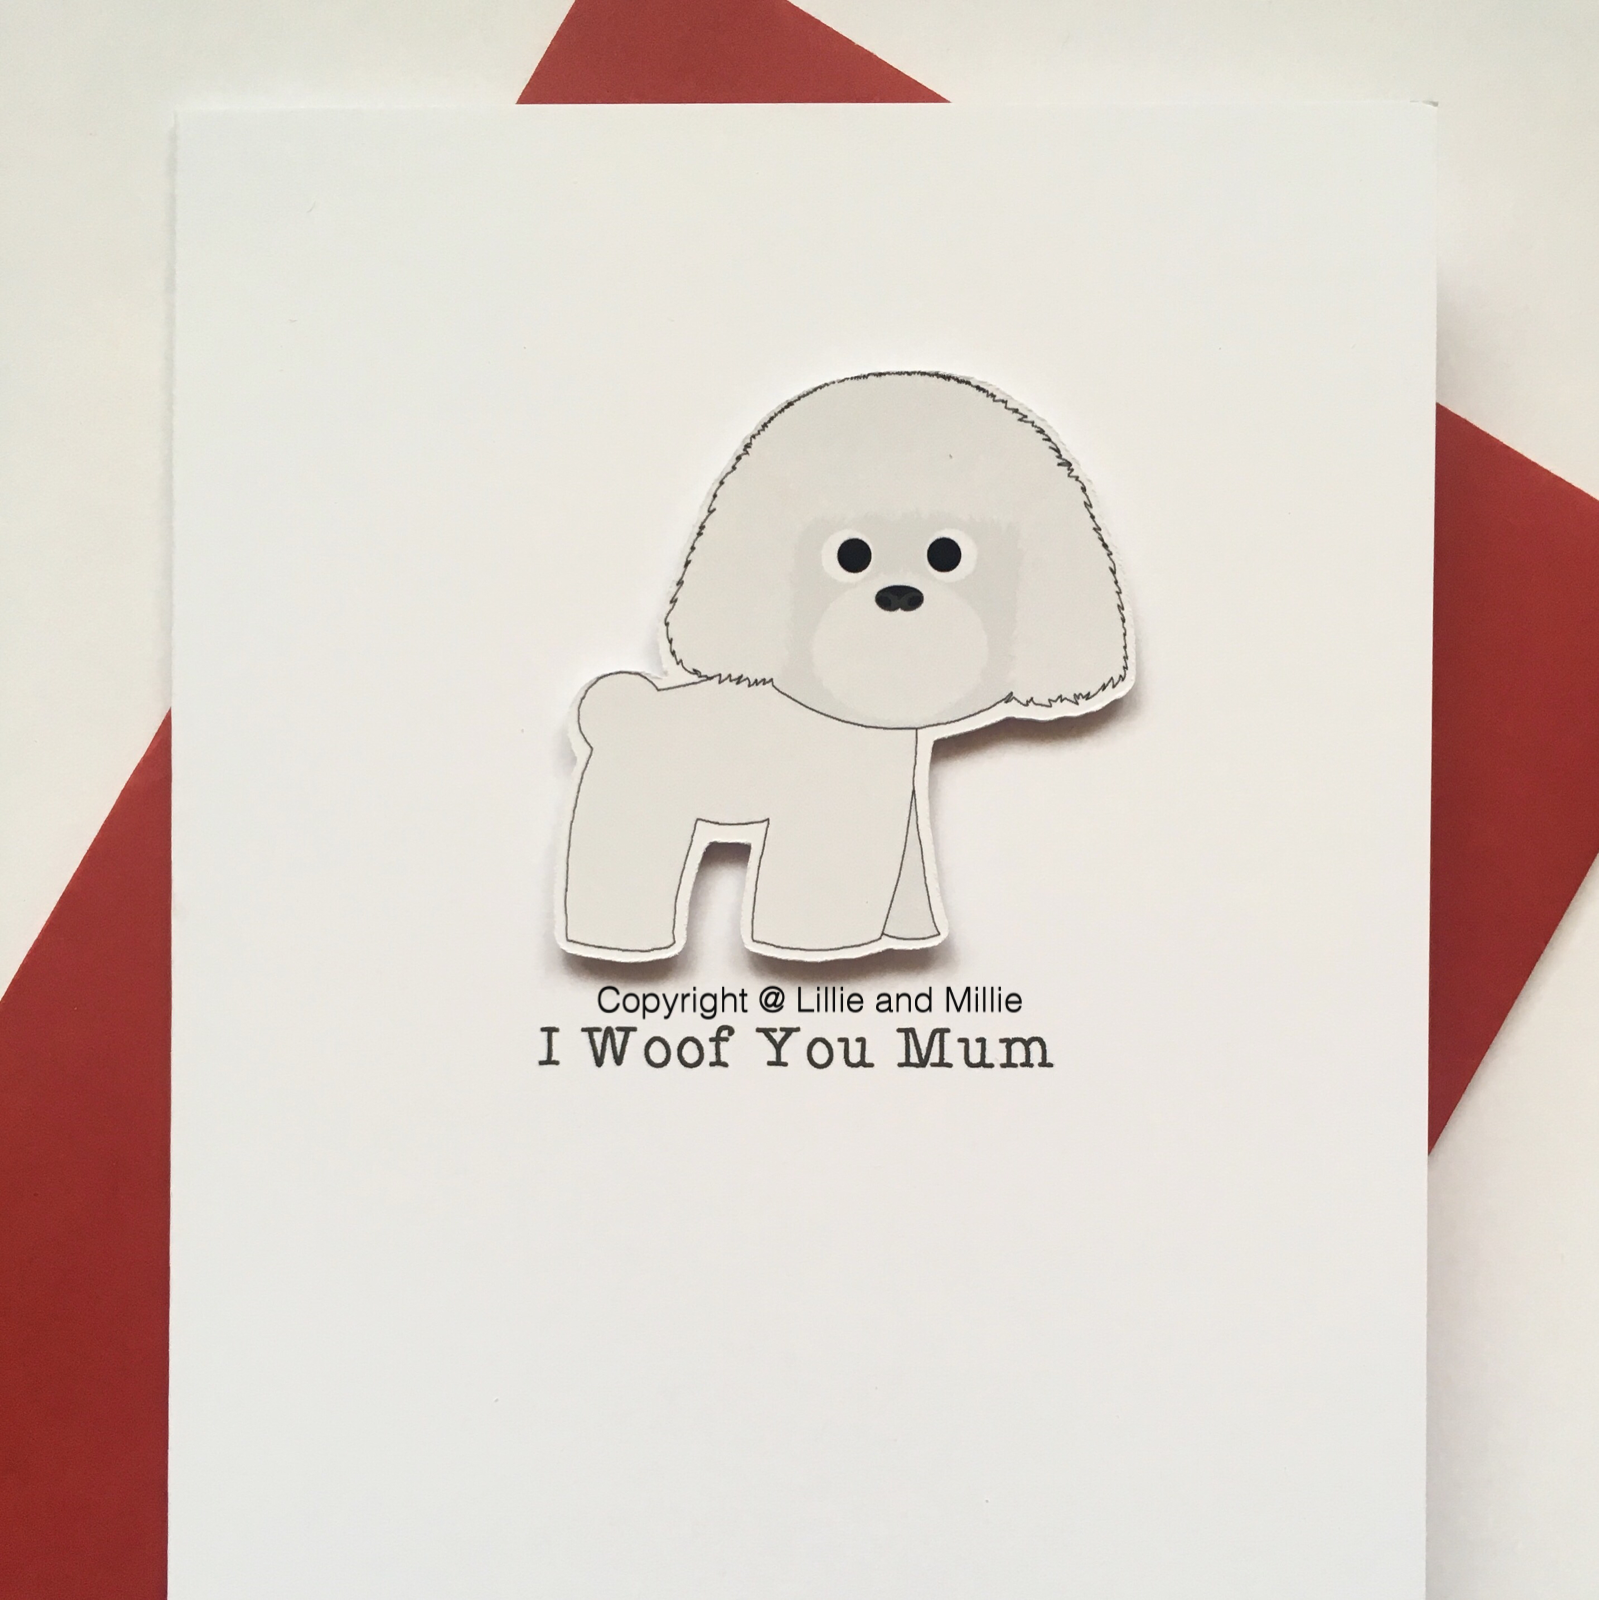 Cute and Cuddly I Woof You Mum Bichon Frise No Bow Card